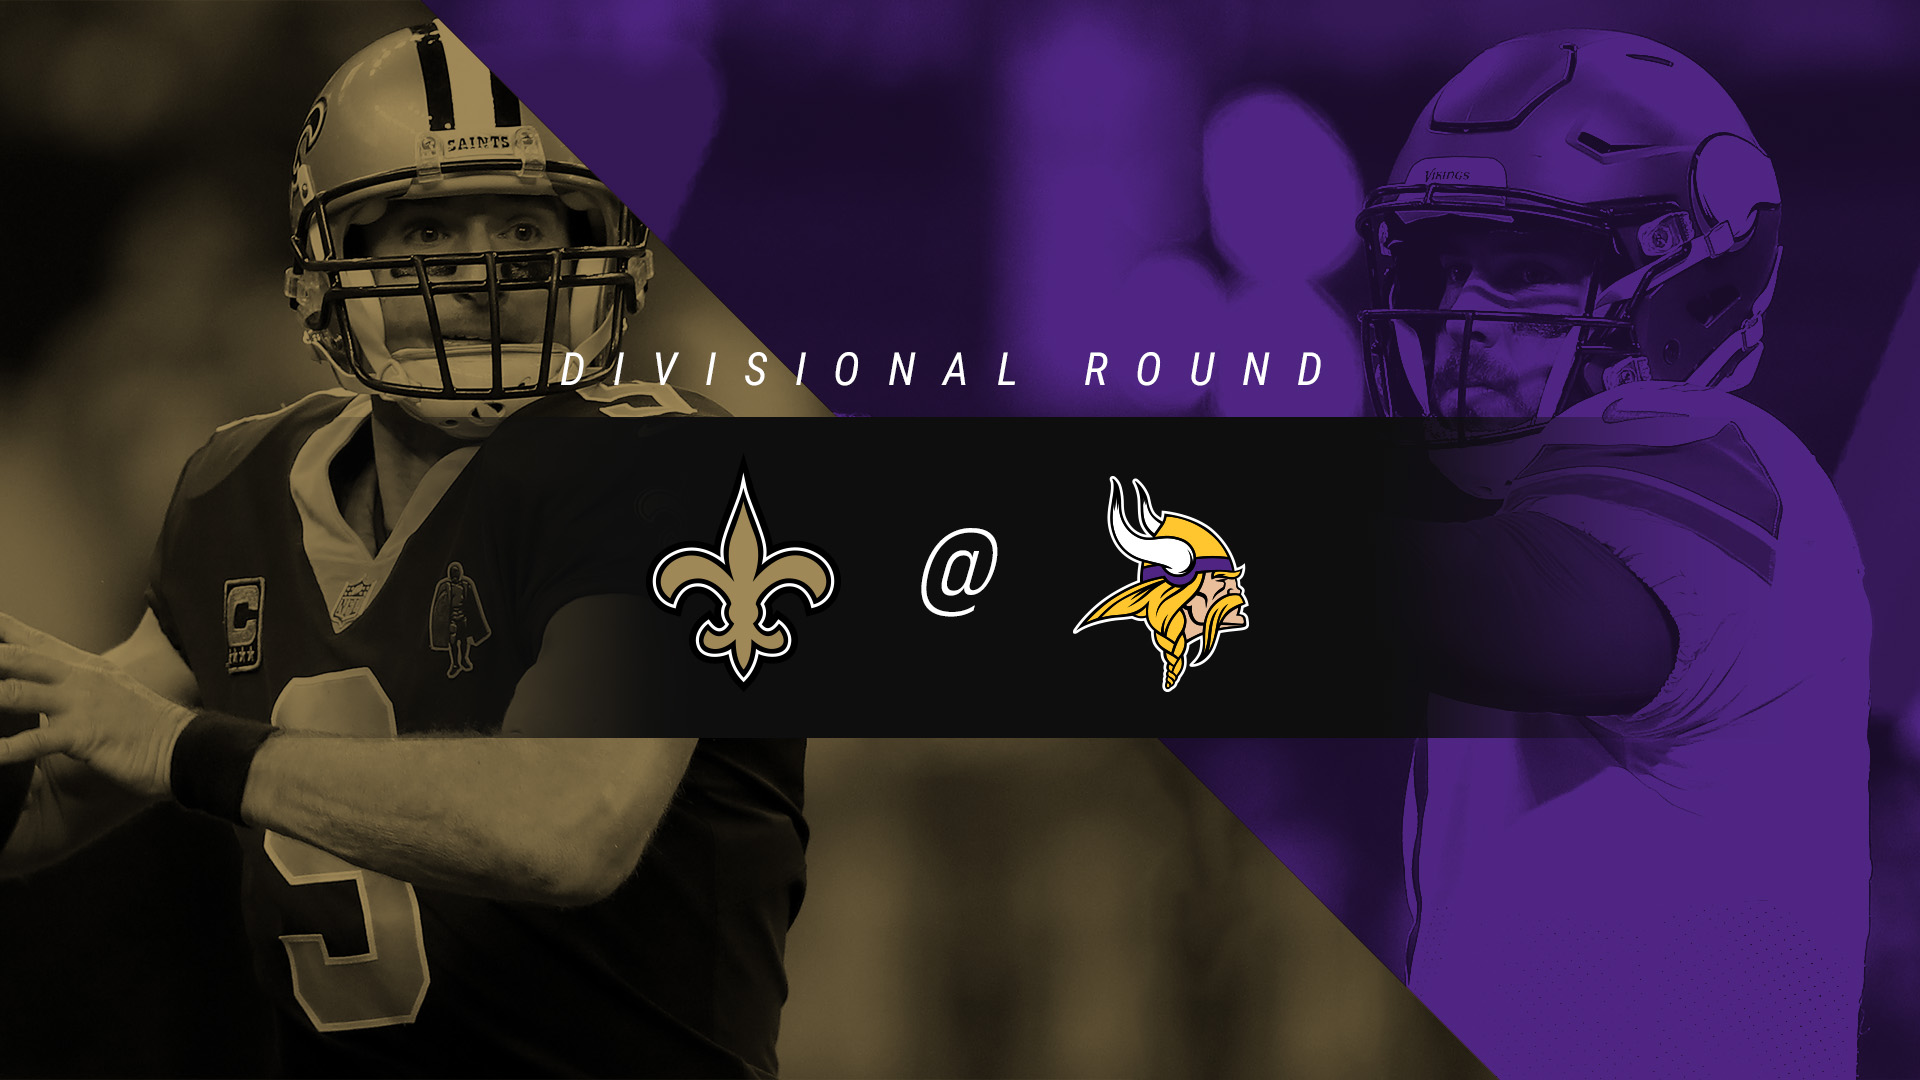 Saints vs. Vikings: Score, live updates from divisional playoff game in Minnesota